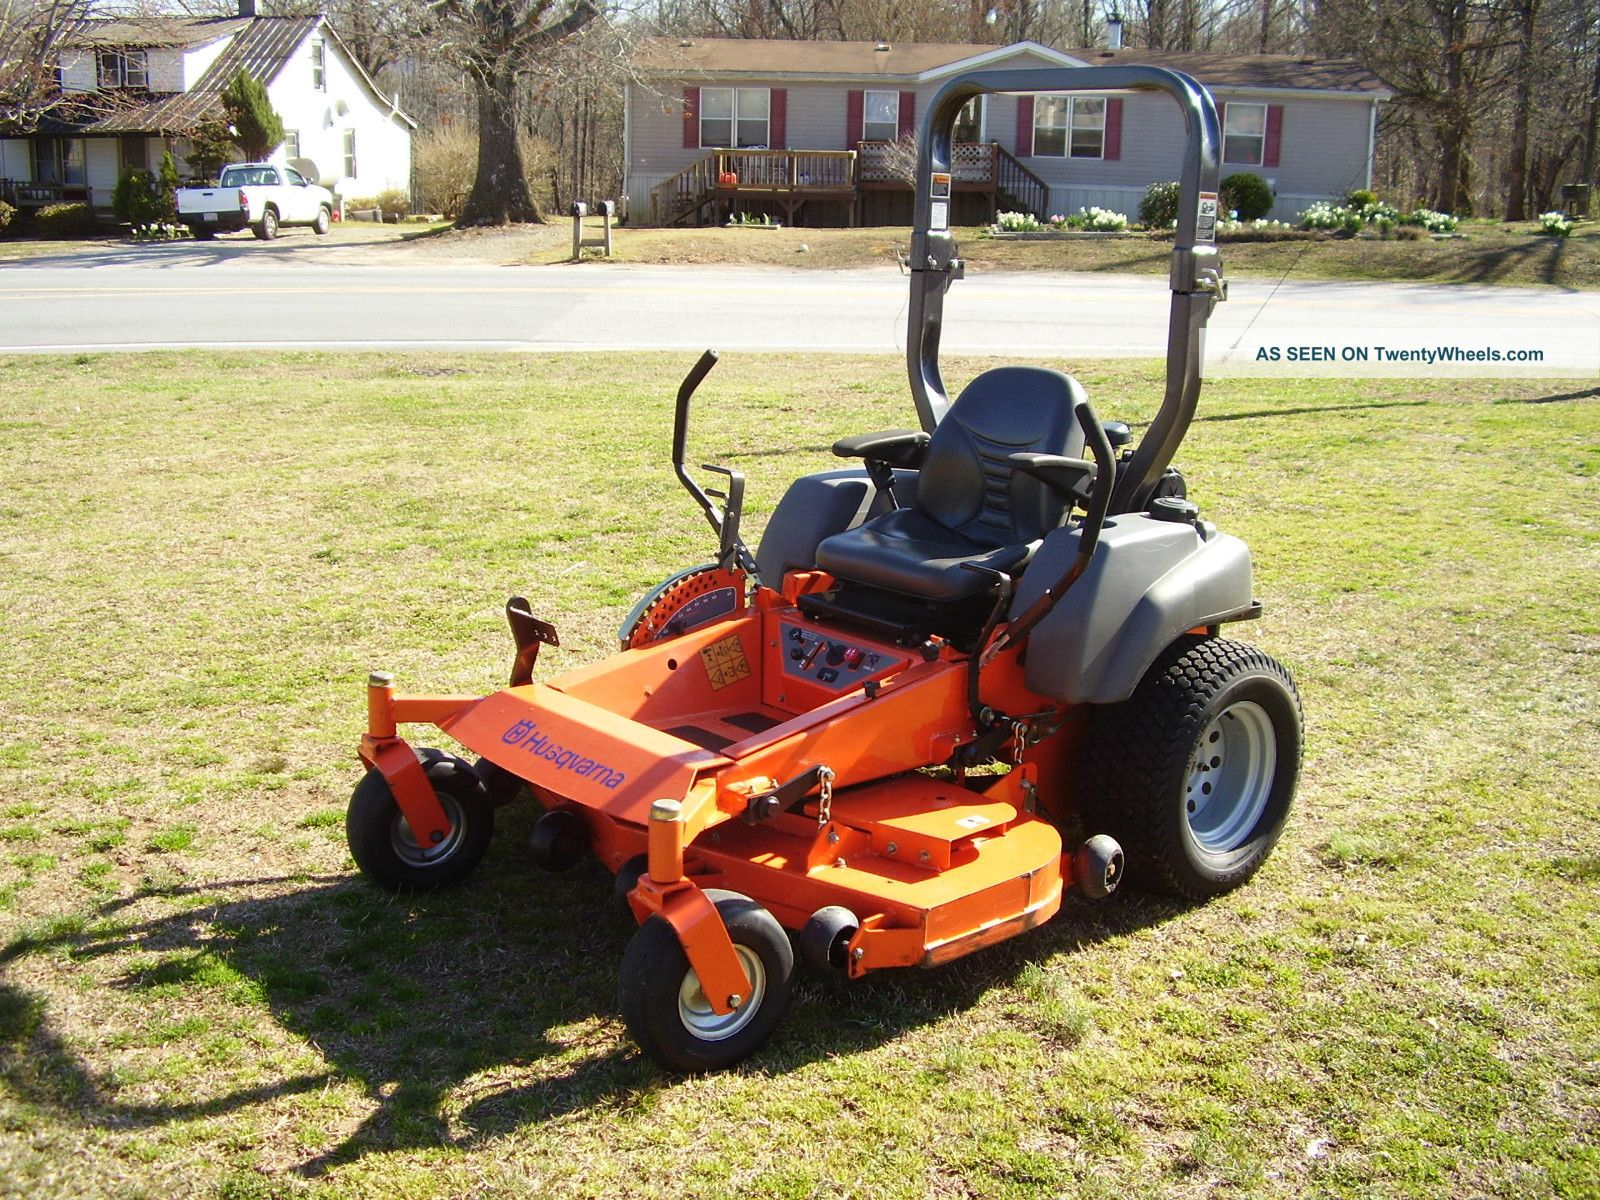 Wiring Diagram For Troy Bilt Pony Schematic additionally Lawn Mower Batteries Walmart together with How To Rebuild A Tecumseh Carburetor further Startrelais Passend Voor Meerdere Merken Zitmaaie as well Hydrostatic Transmission Tuff Torq 918 07009. on troy bilt riding lawn mower wiring diagram